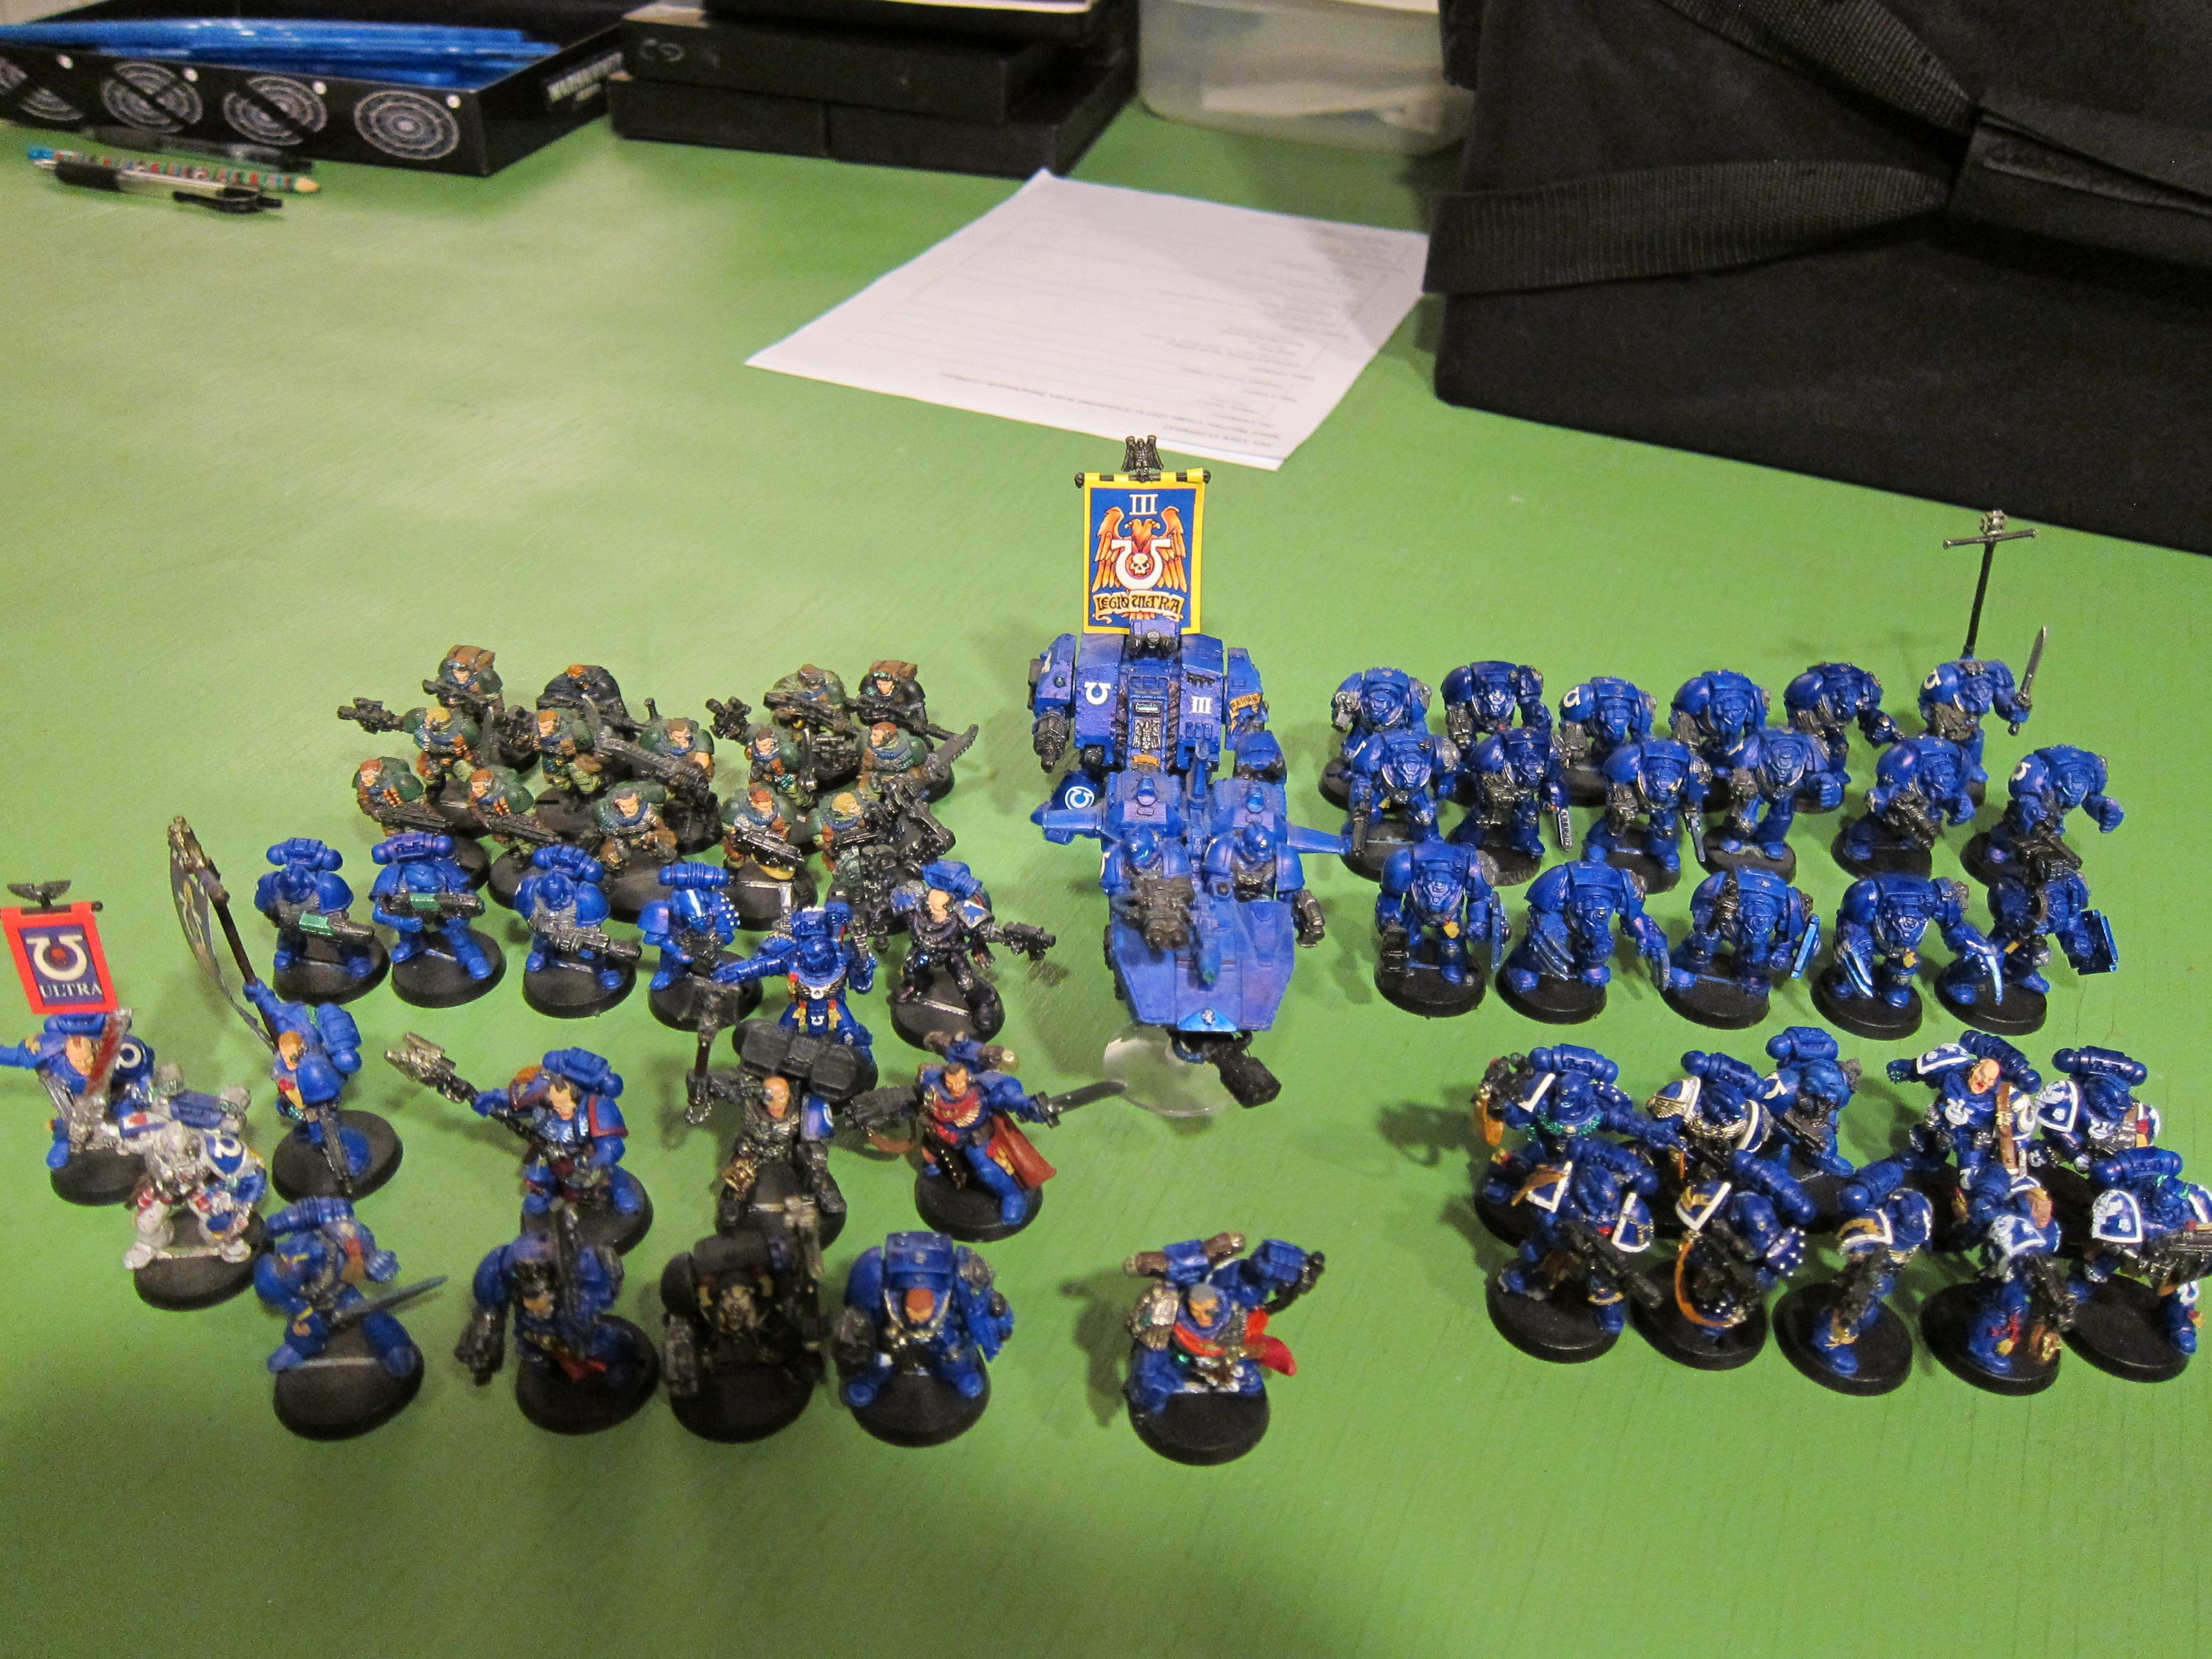 Calgar, Classic, Land Speeders, Metal, Old School, Space Marines, Terminator Armor, Ultramarines, White Metal